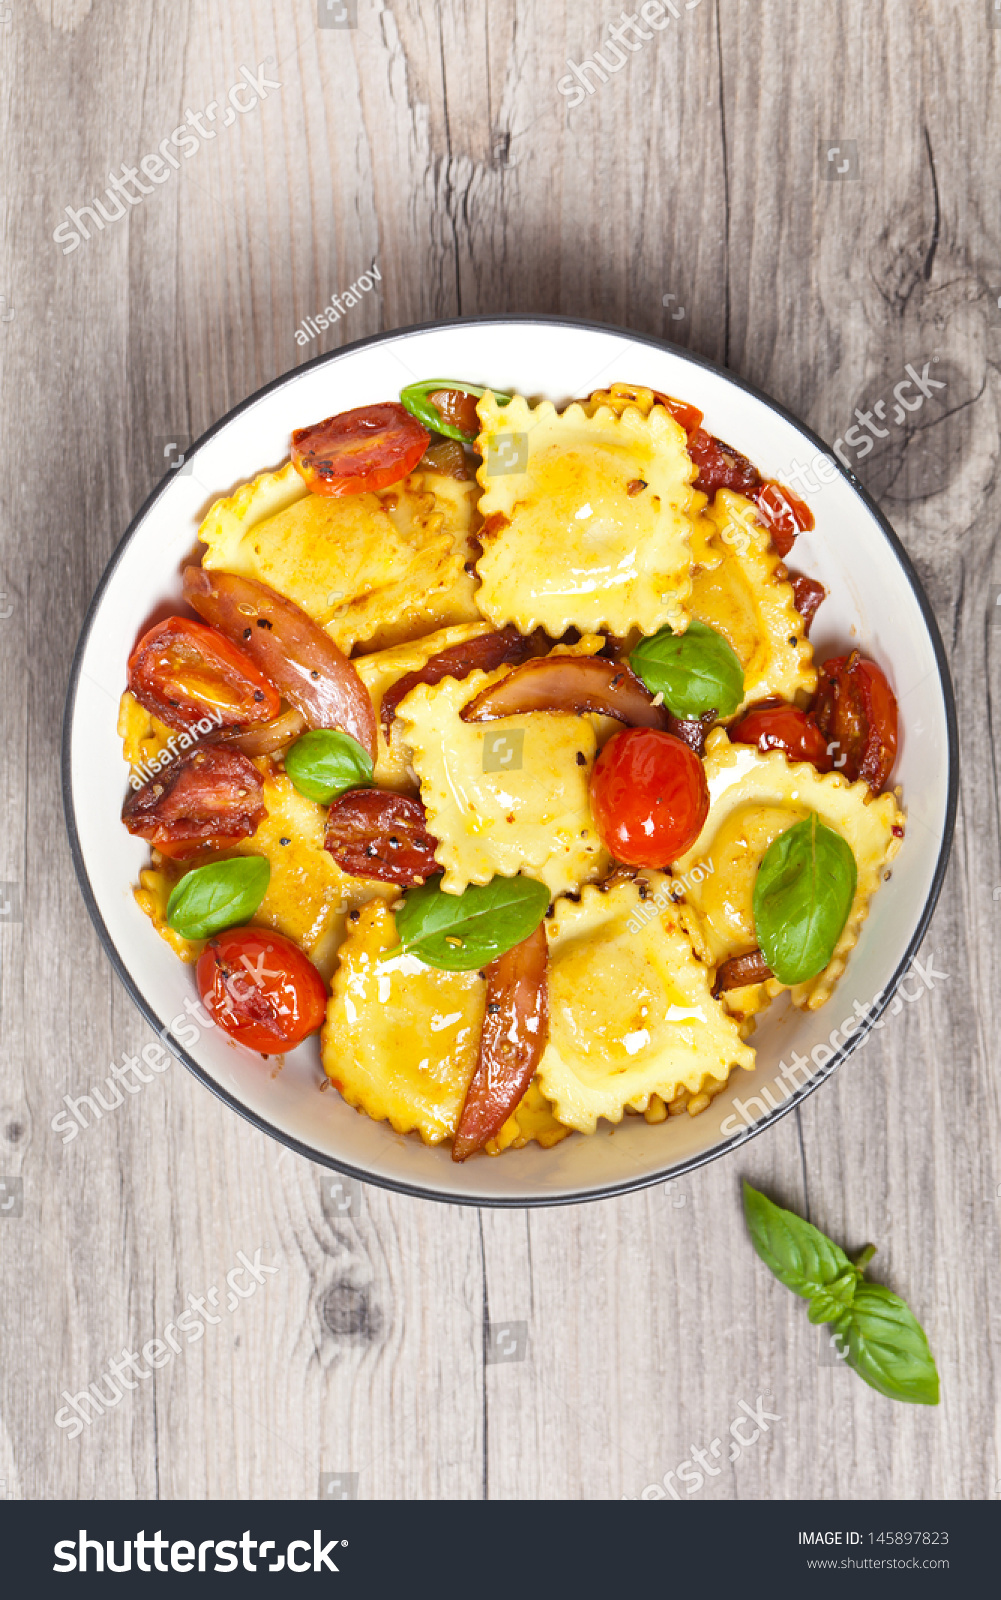 Ravioli With Ricotta, Tomatoes And Basil Stock Photo ...